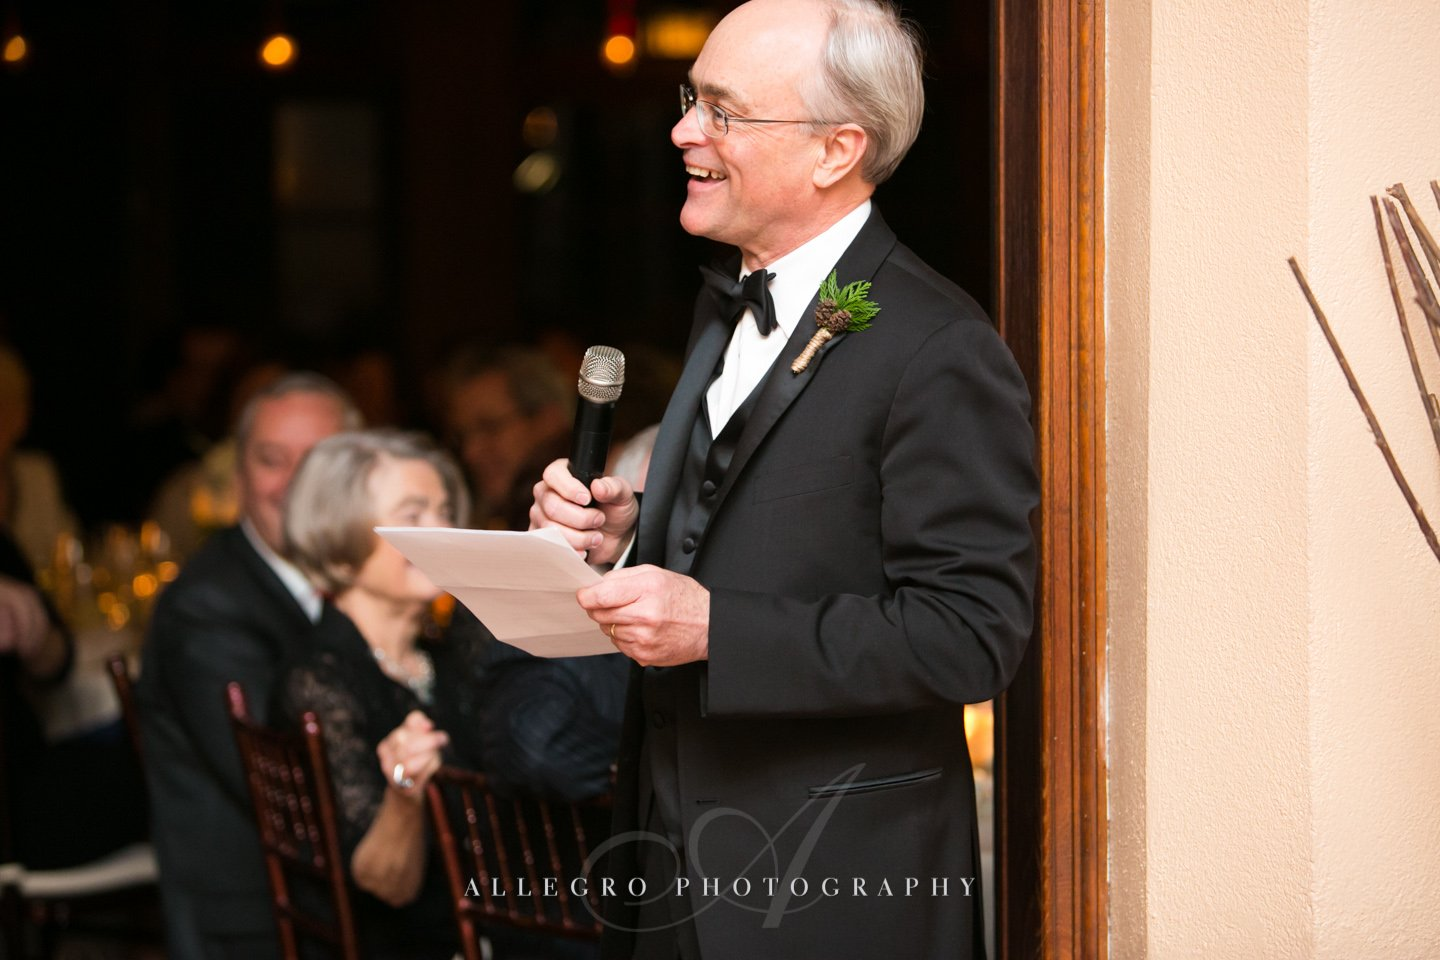 dad toast - photo by allegro photography